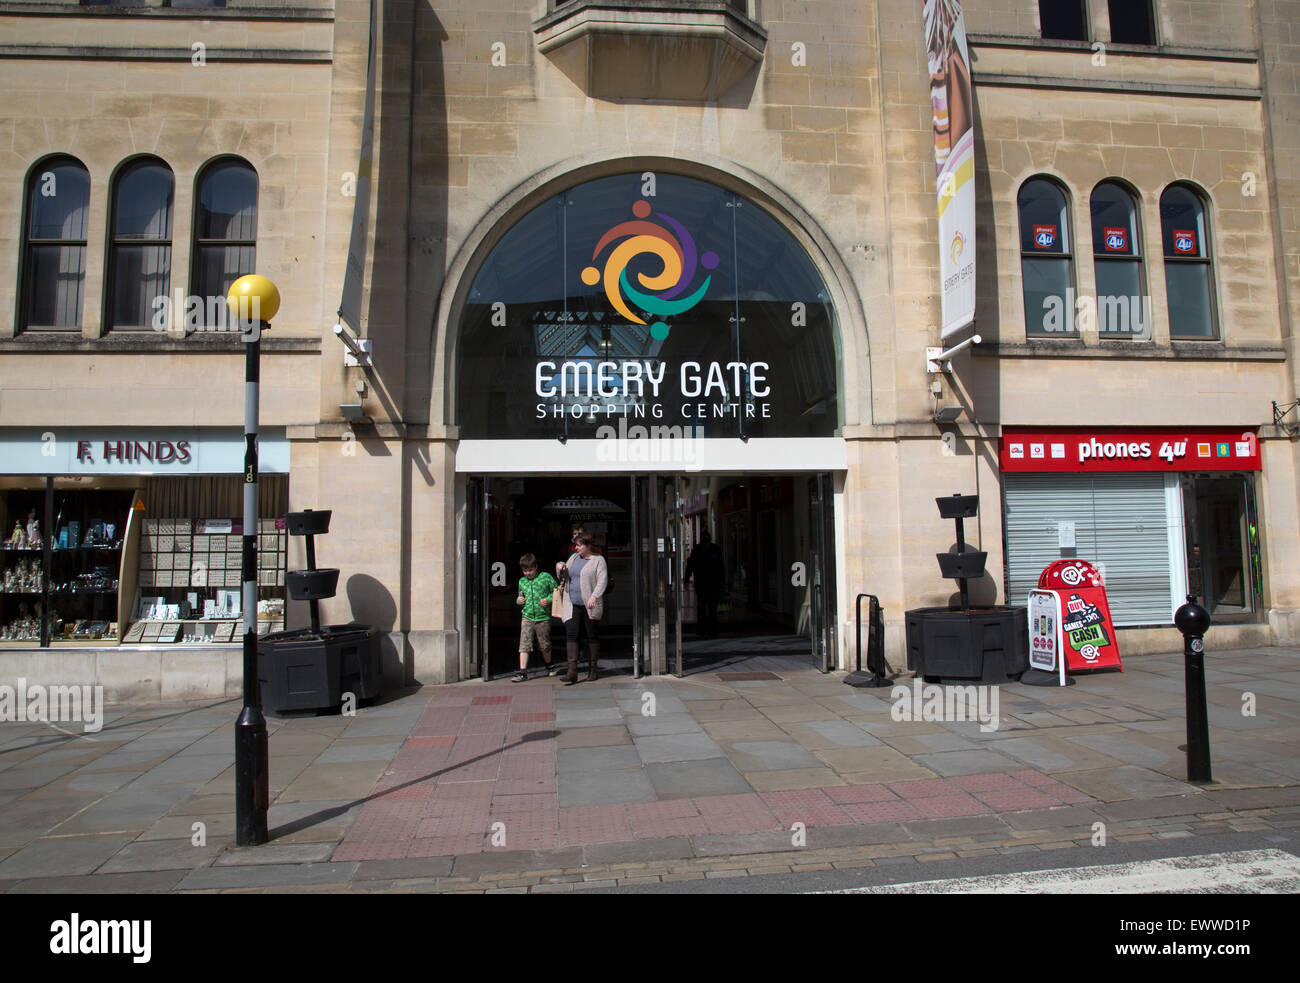 Emery Gate shopping centre in town centre, Chippenham, Wiltshire, England, UK - Stock Image